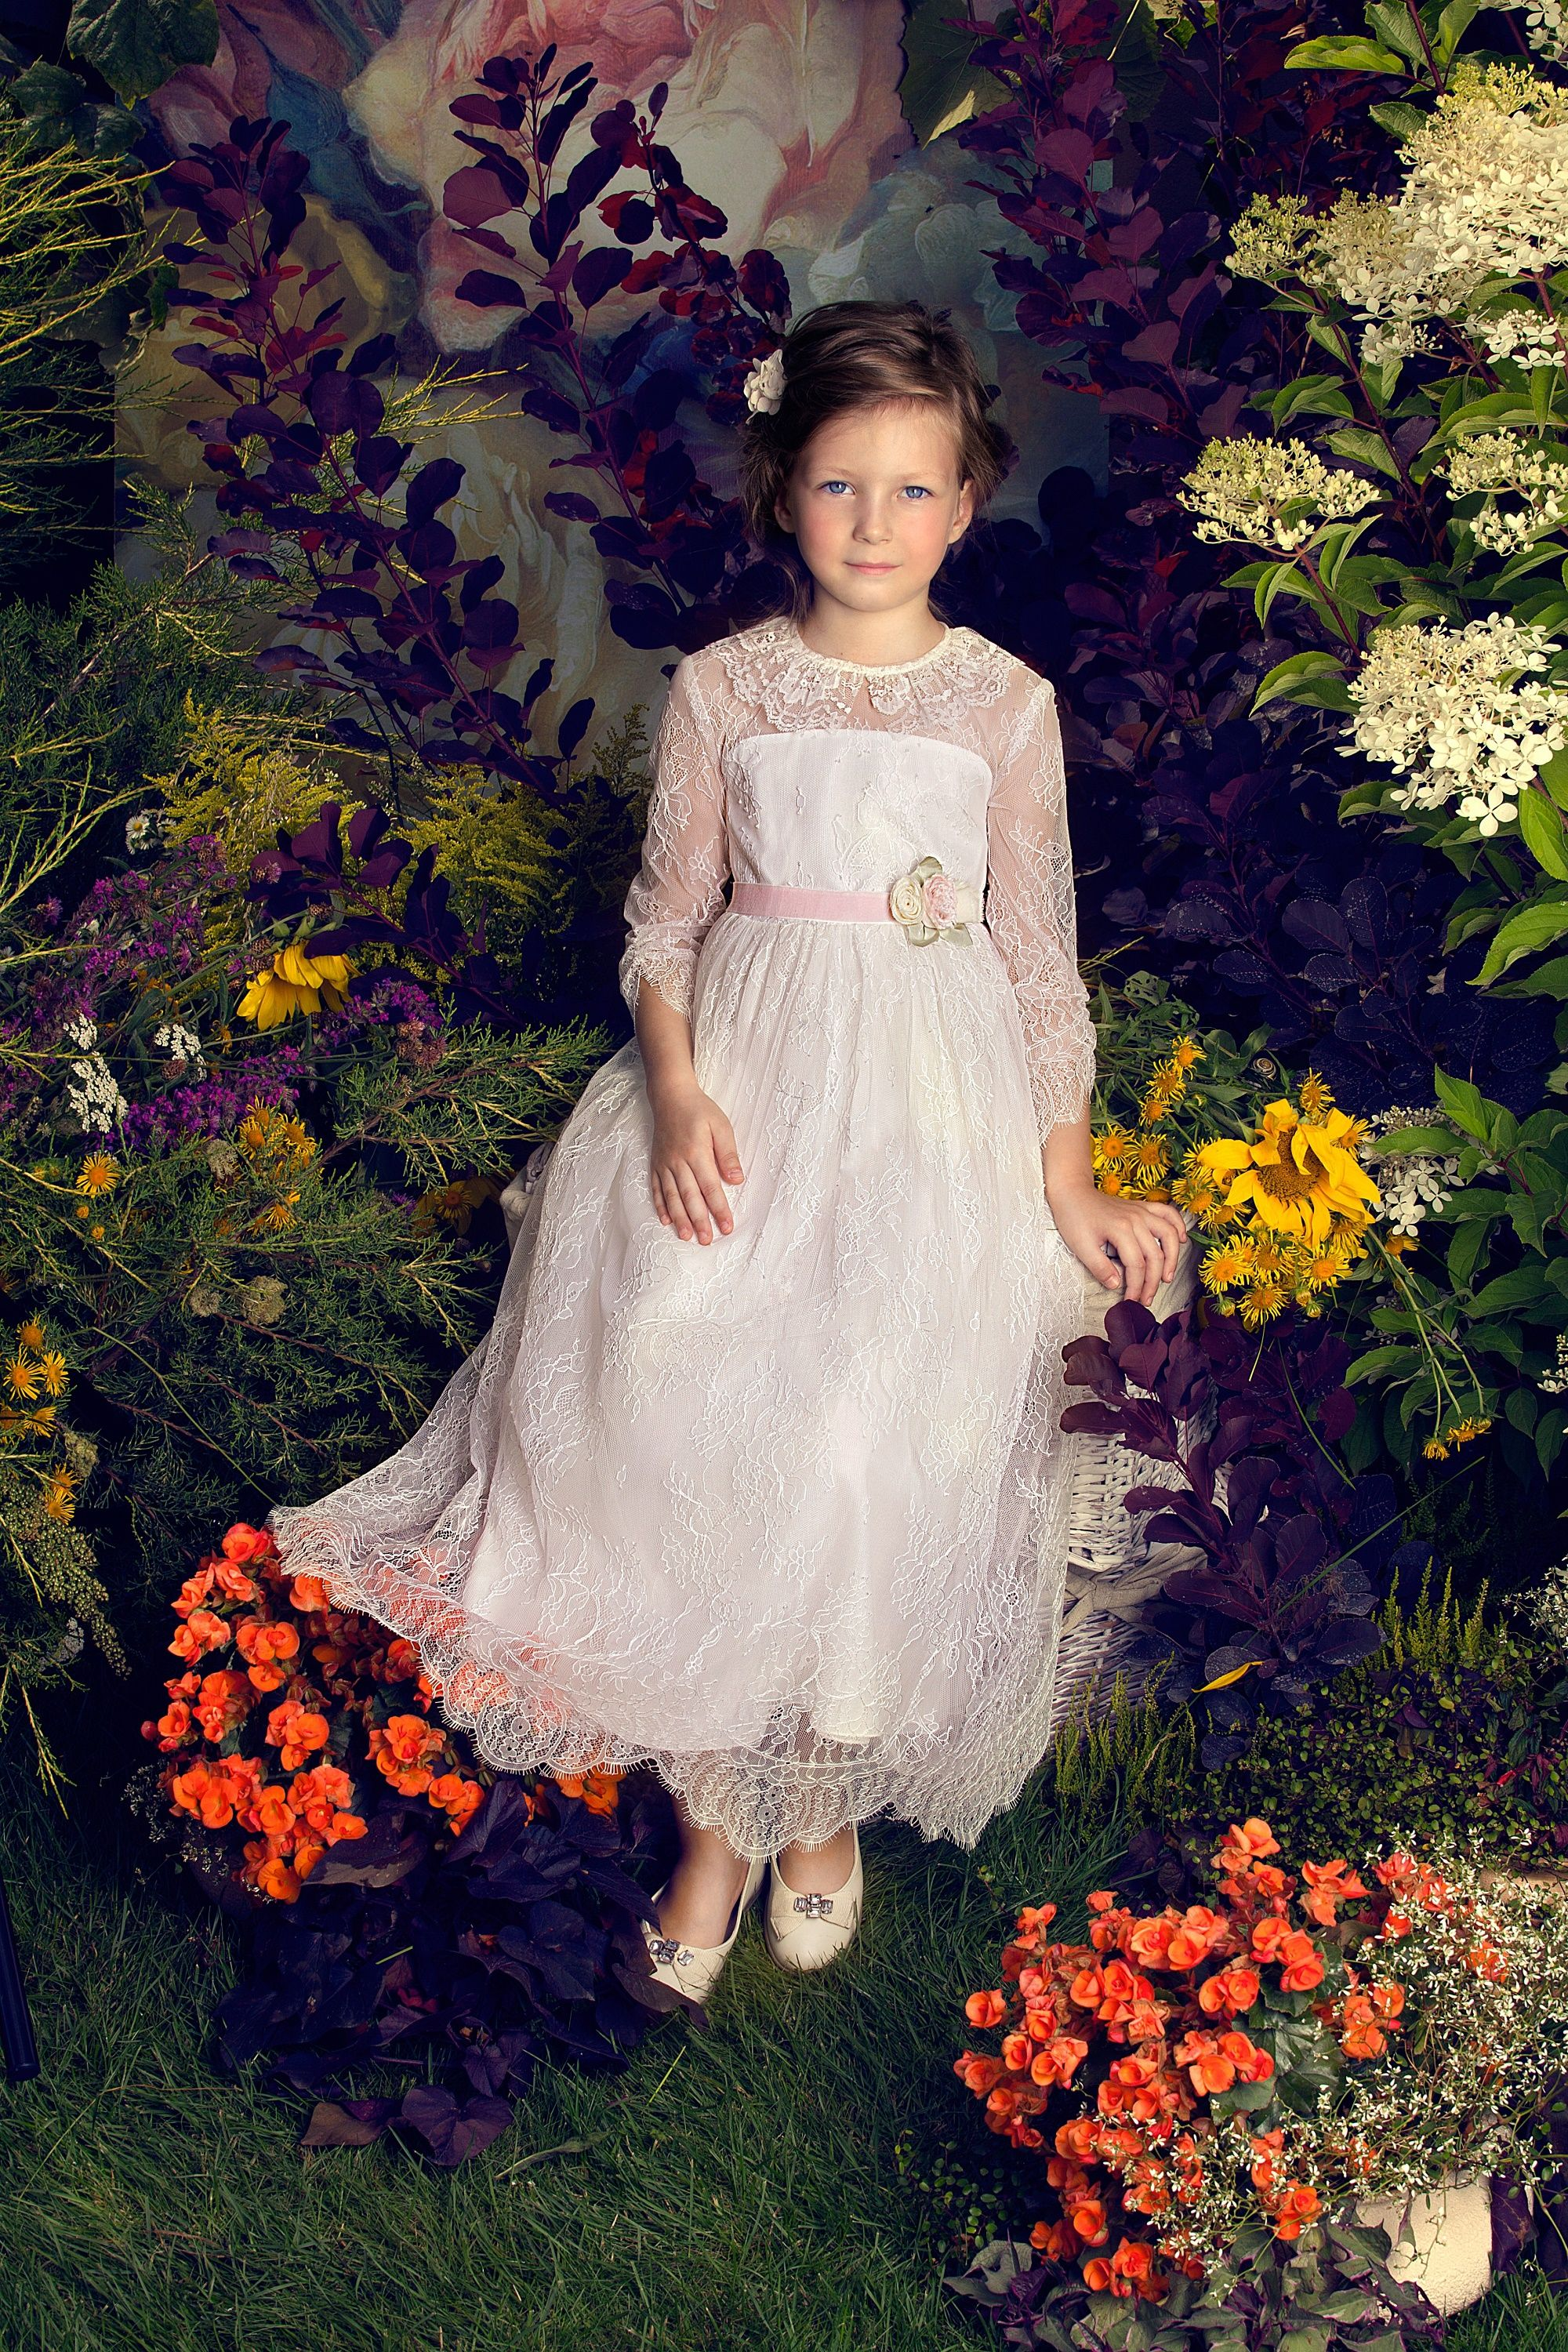 Check out our fabulous flowergirl dresses at http://facebook.com/papiliogirls  !